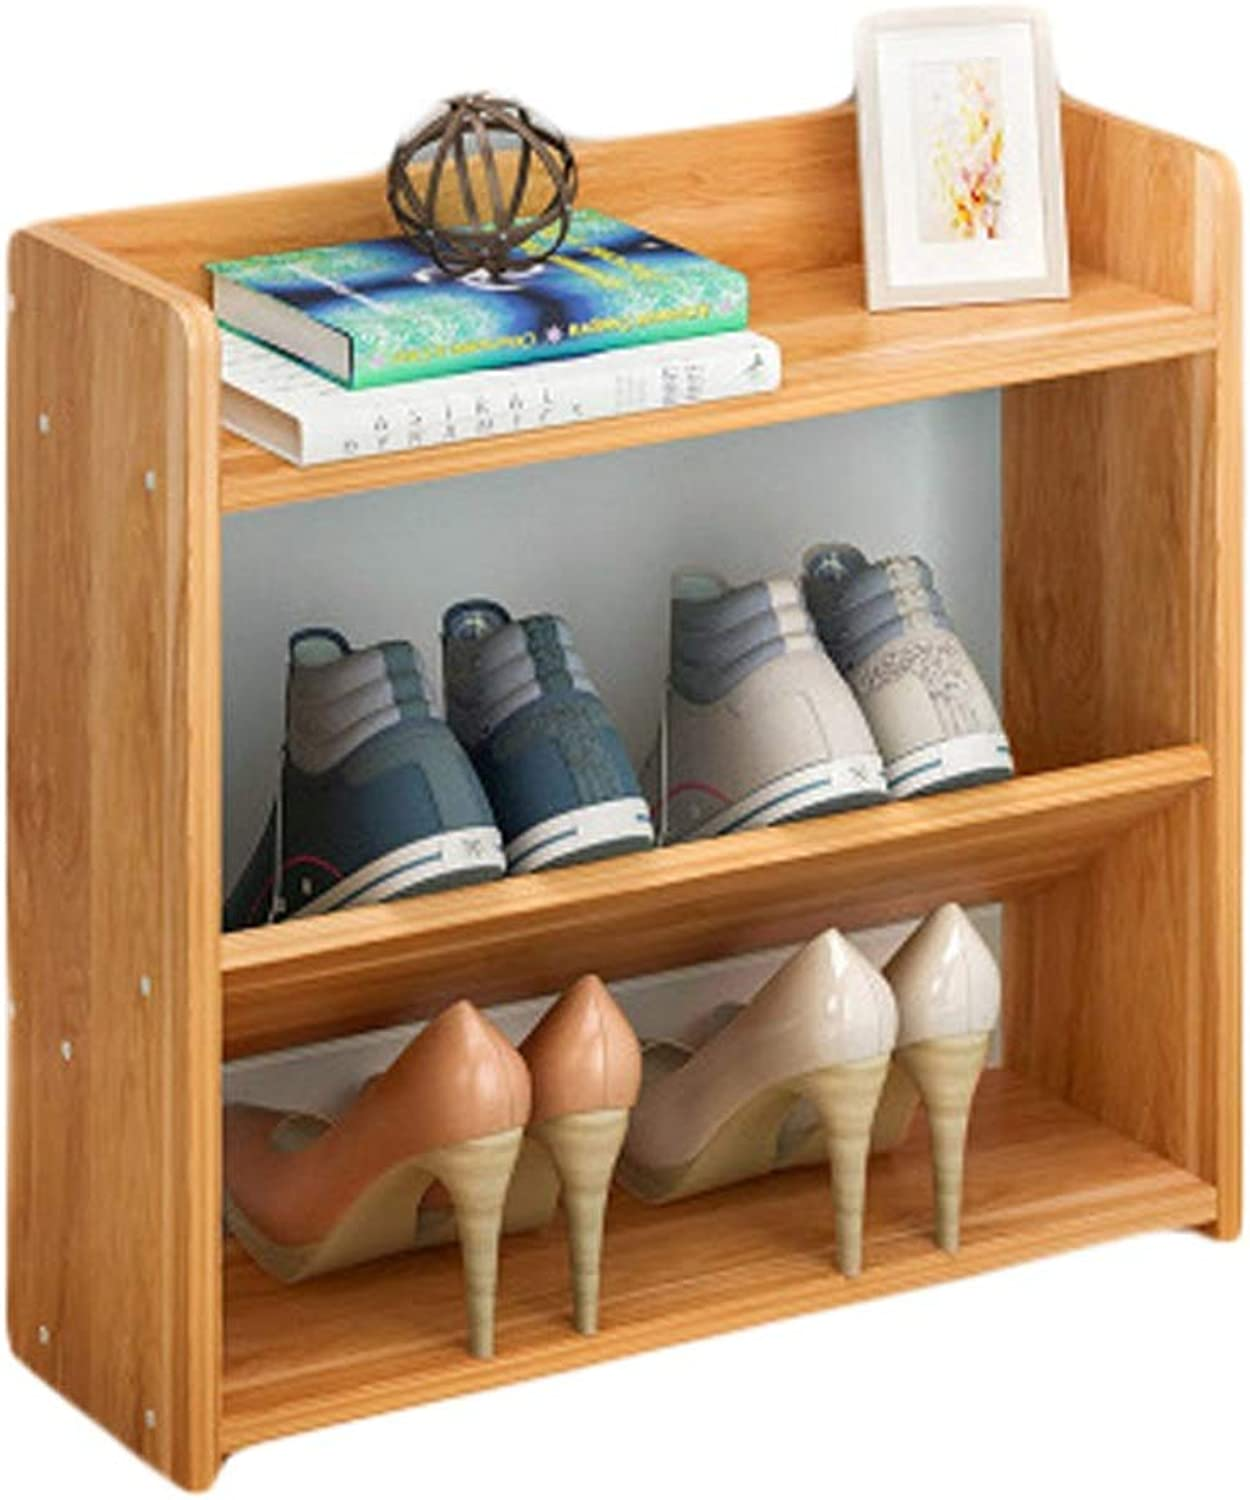 shoes Rack Wooden shoes Rack Simple shoes Rack Multifunctional shoes Rack Living Room Dormitory shoes Rack shoes Organizer, Storage Shelf, Ideal for Entryway (color   Red Leaf Maple, Size   40  17  18cm)